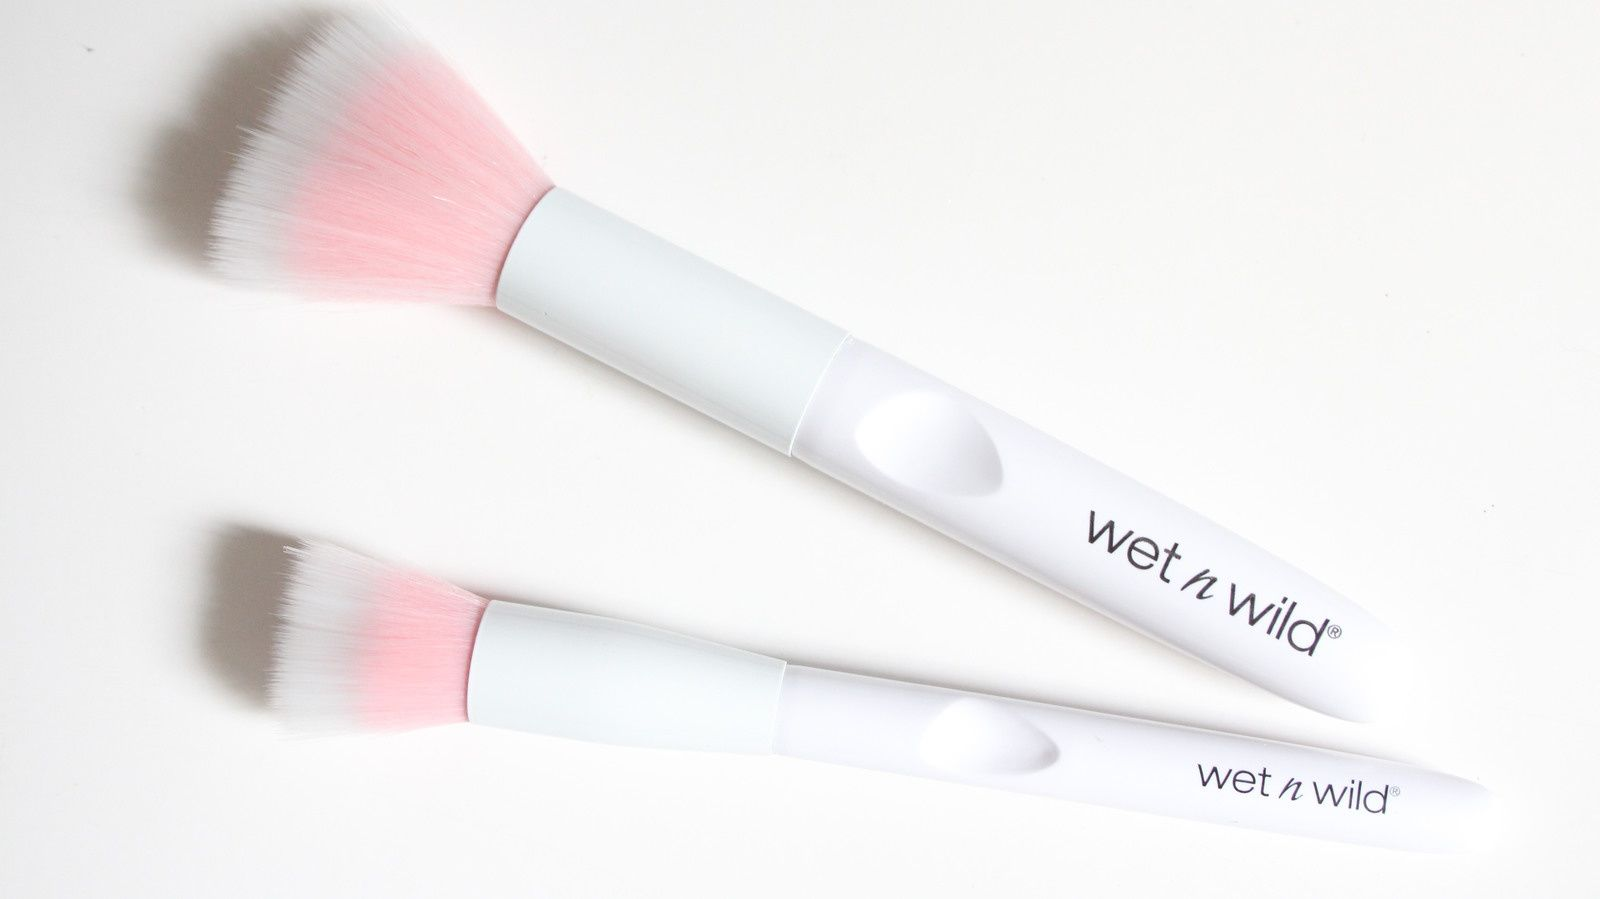 NEW Wet n Wild Brushes First Impressions / Review